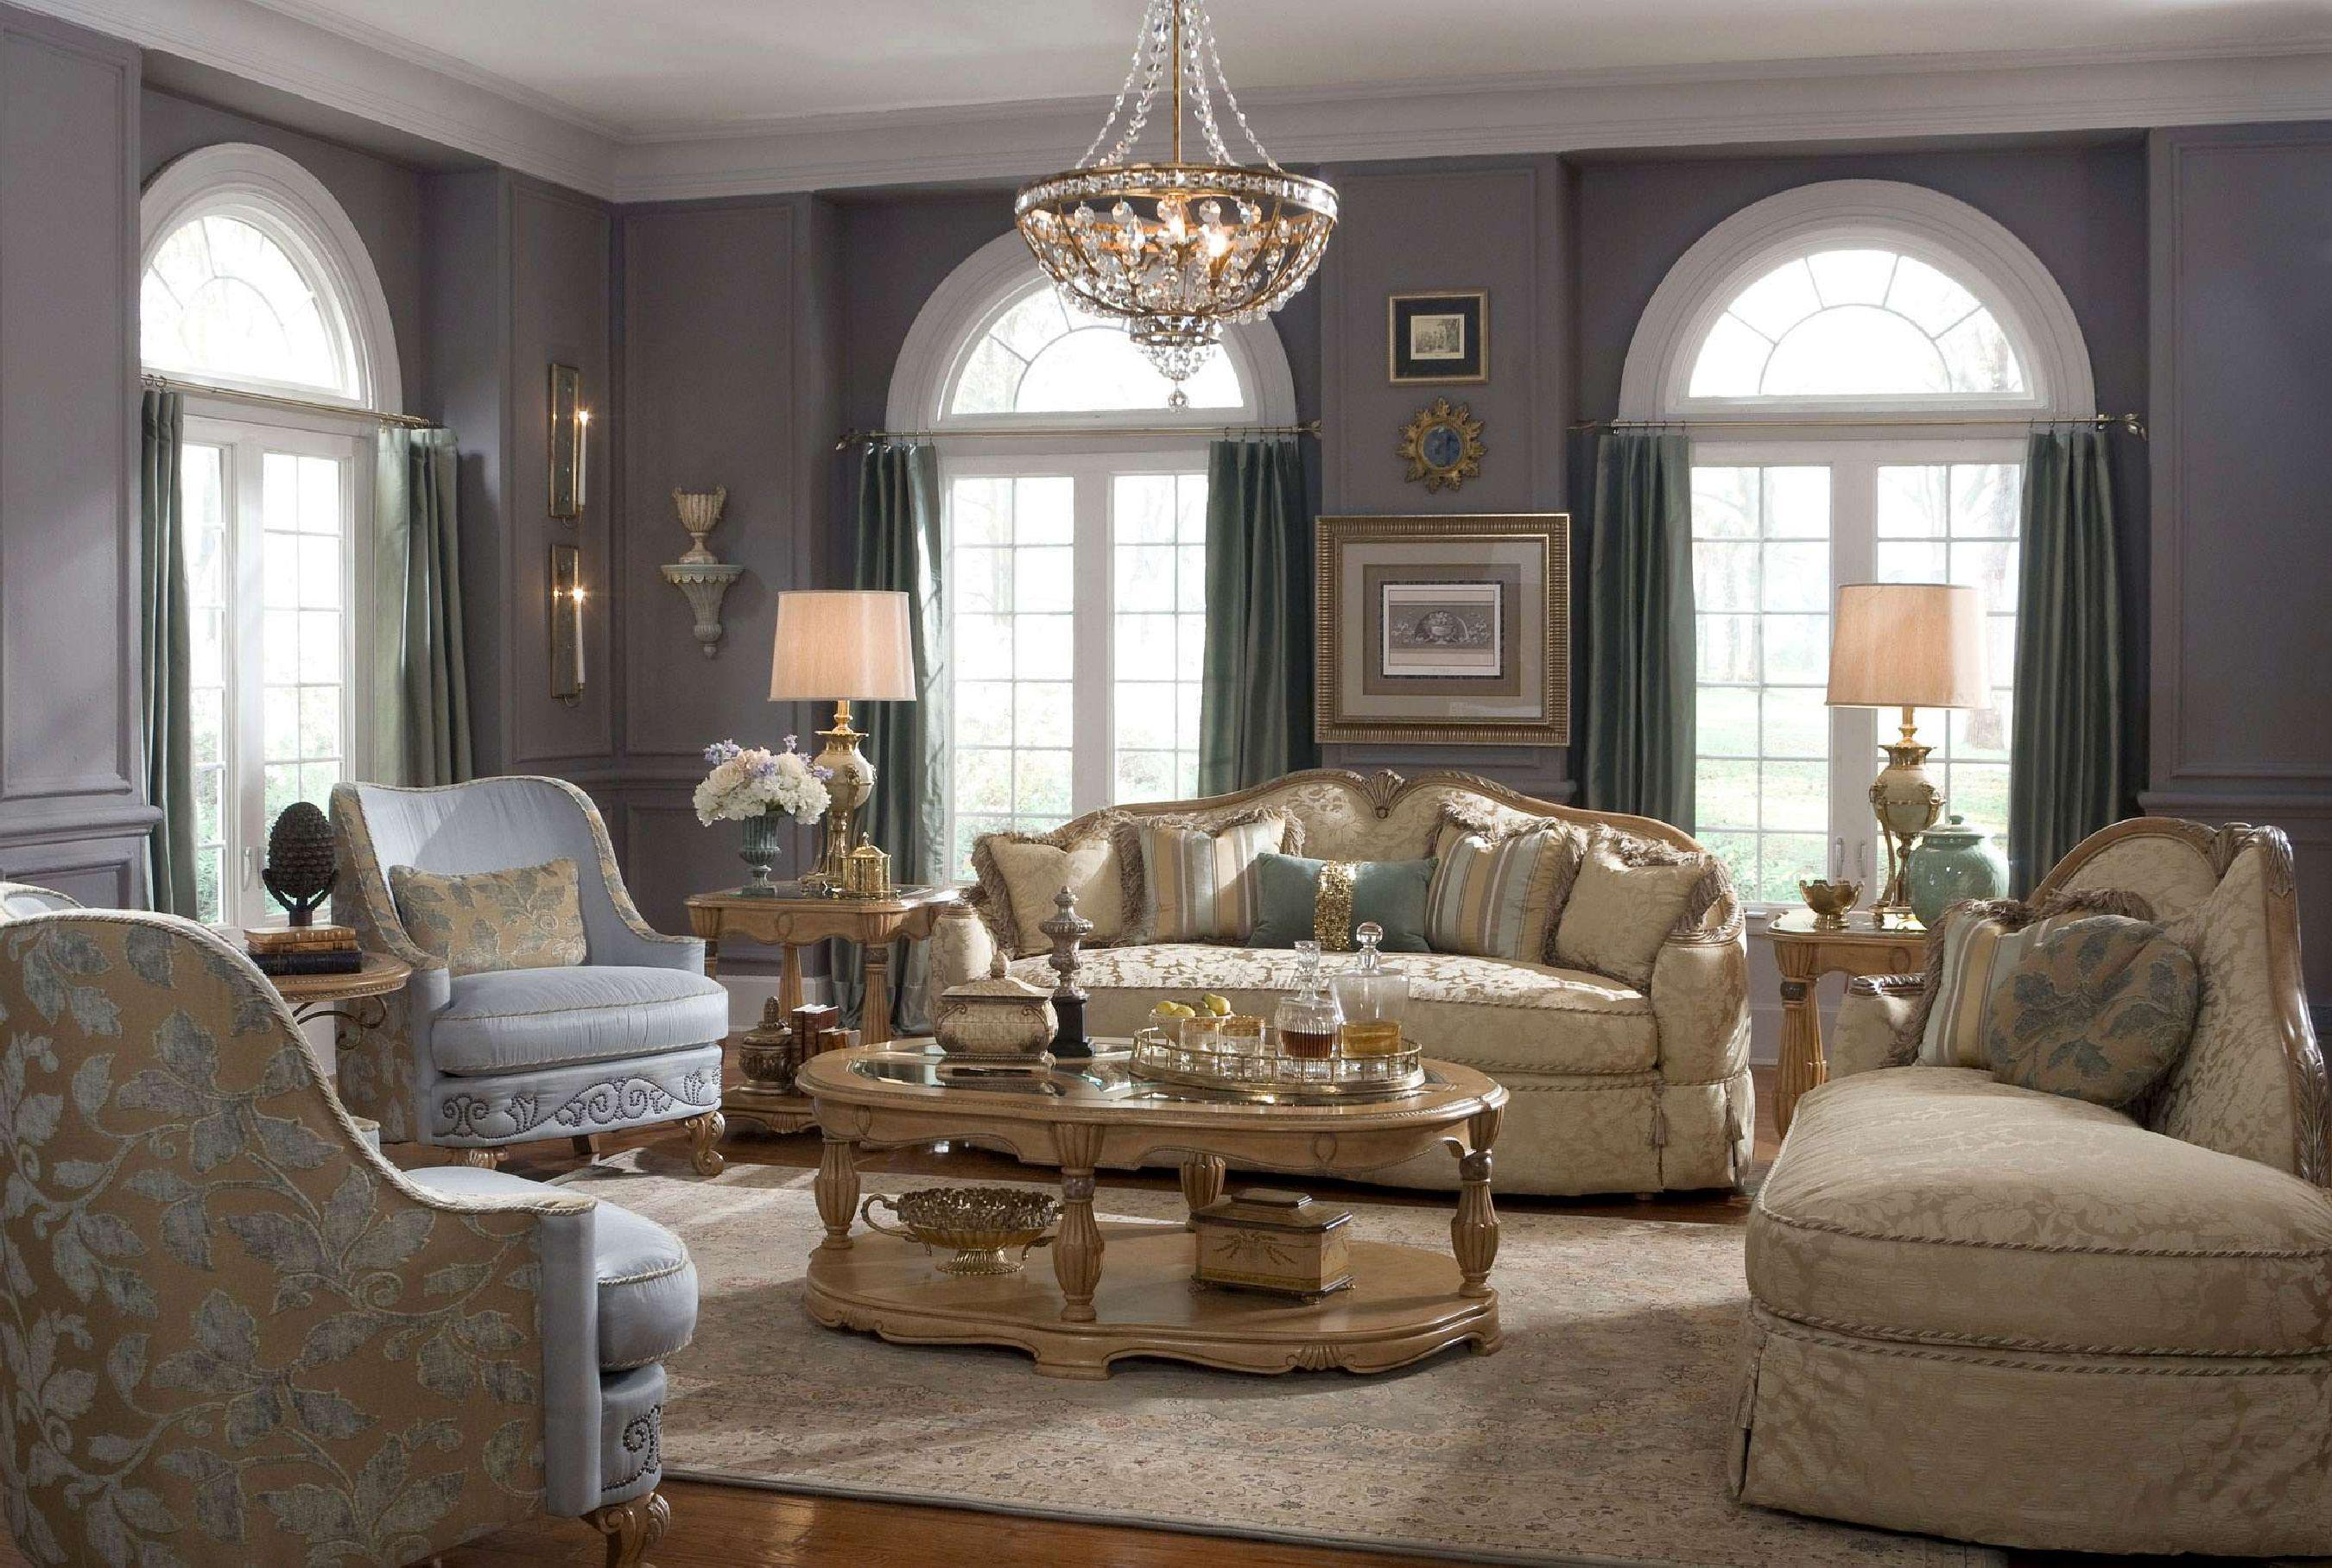 3 benefits of decorating your home with antiques 3 How to decorate ur house